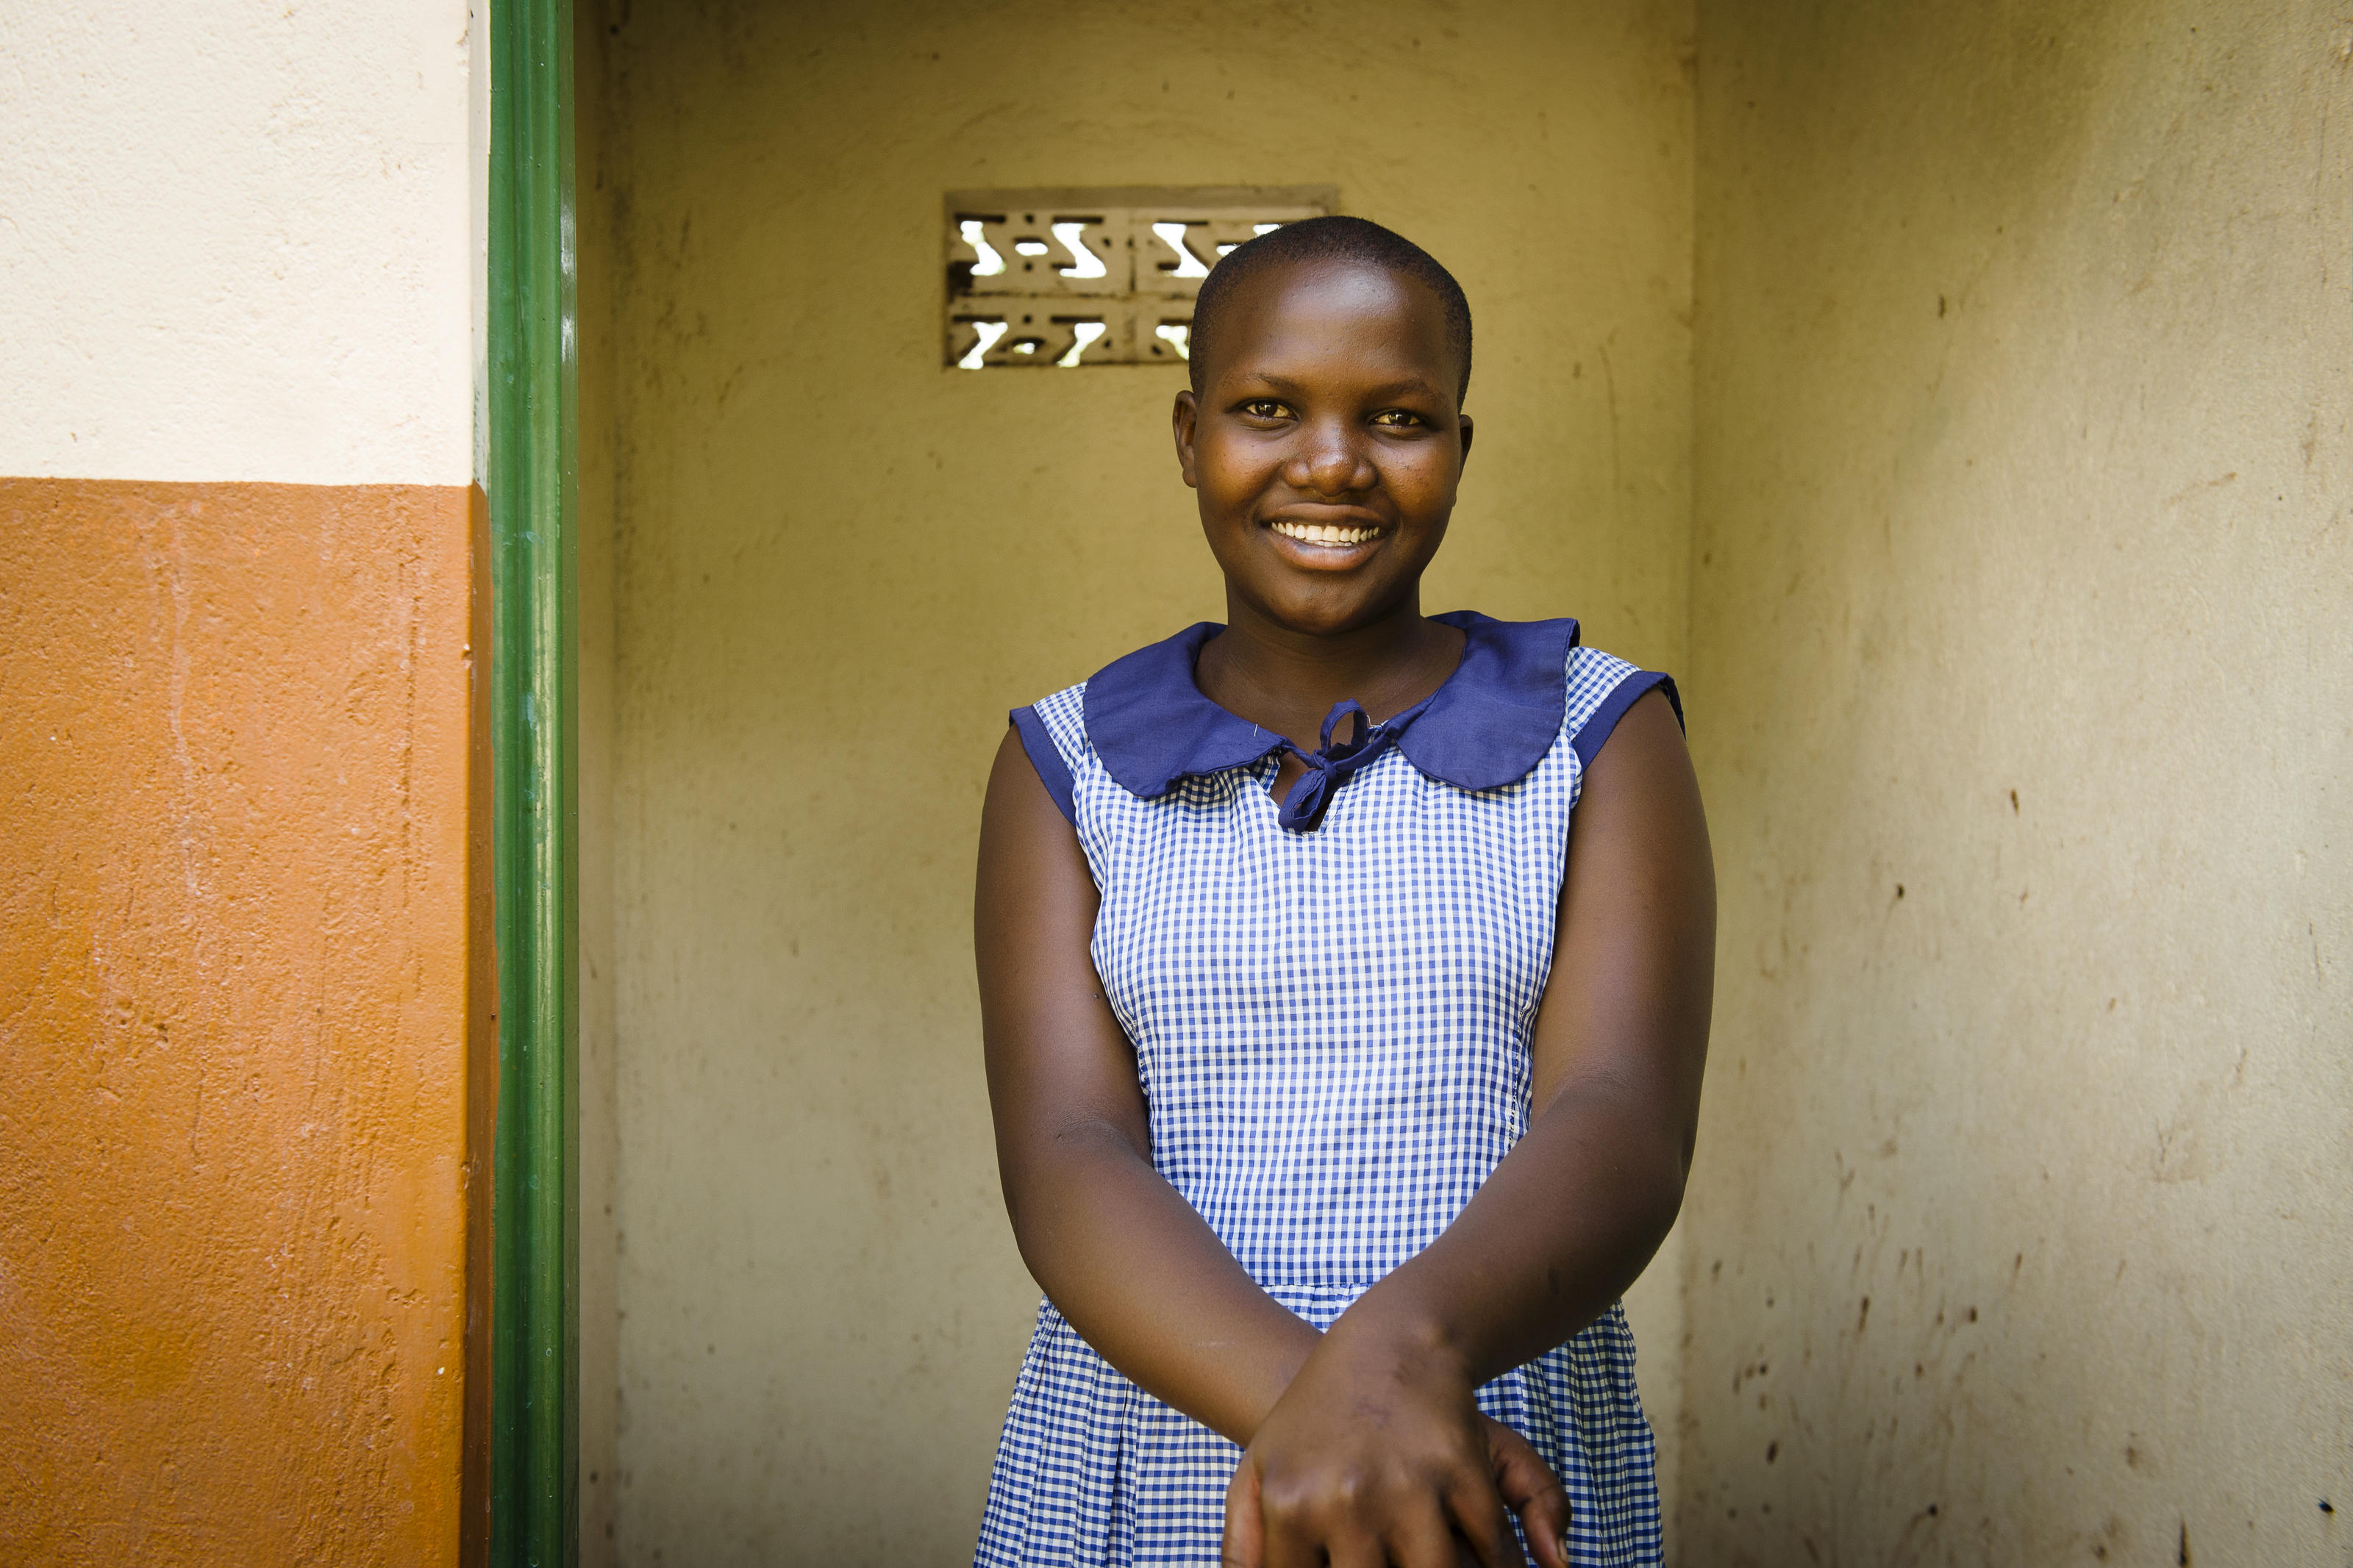 Sharon, WASH Club member, stands outside the newly built WaterAid latrine block at St Mary's School in Uganda.